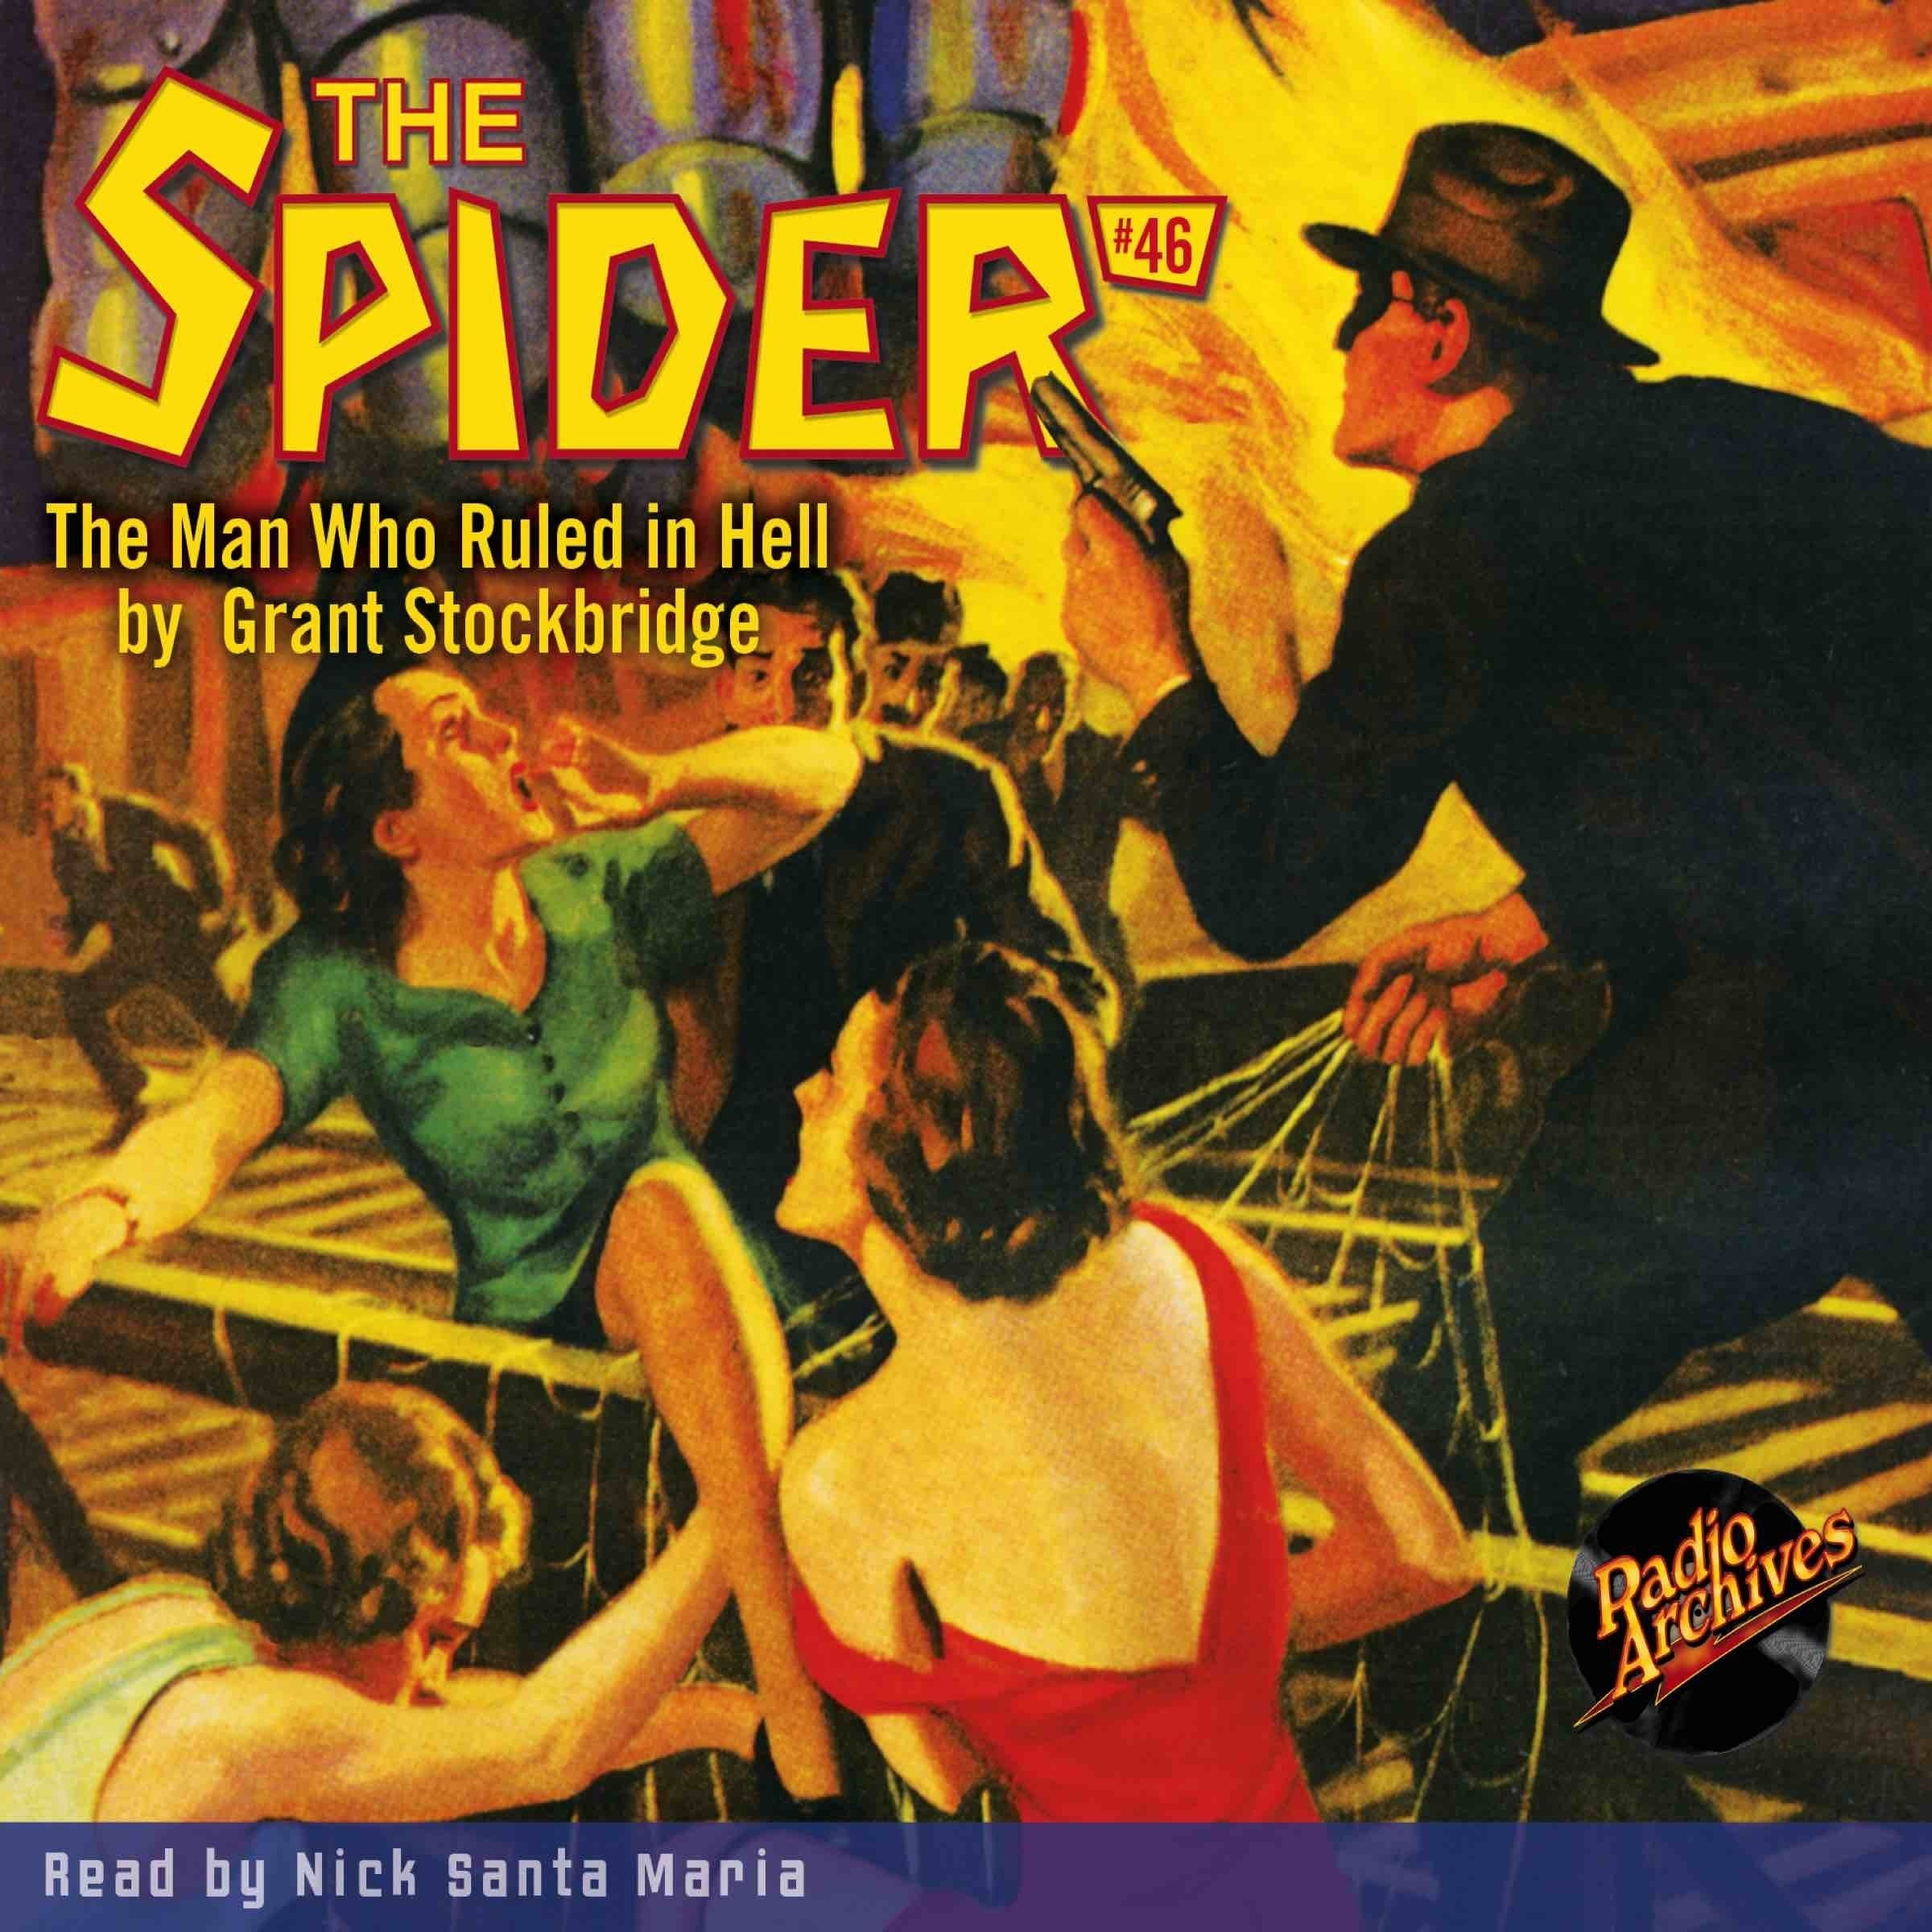 Printable Spider #46, The: The Man Who Ruled in Hell Audiobook Cover Art